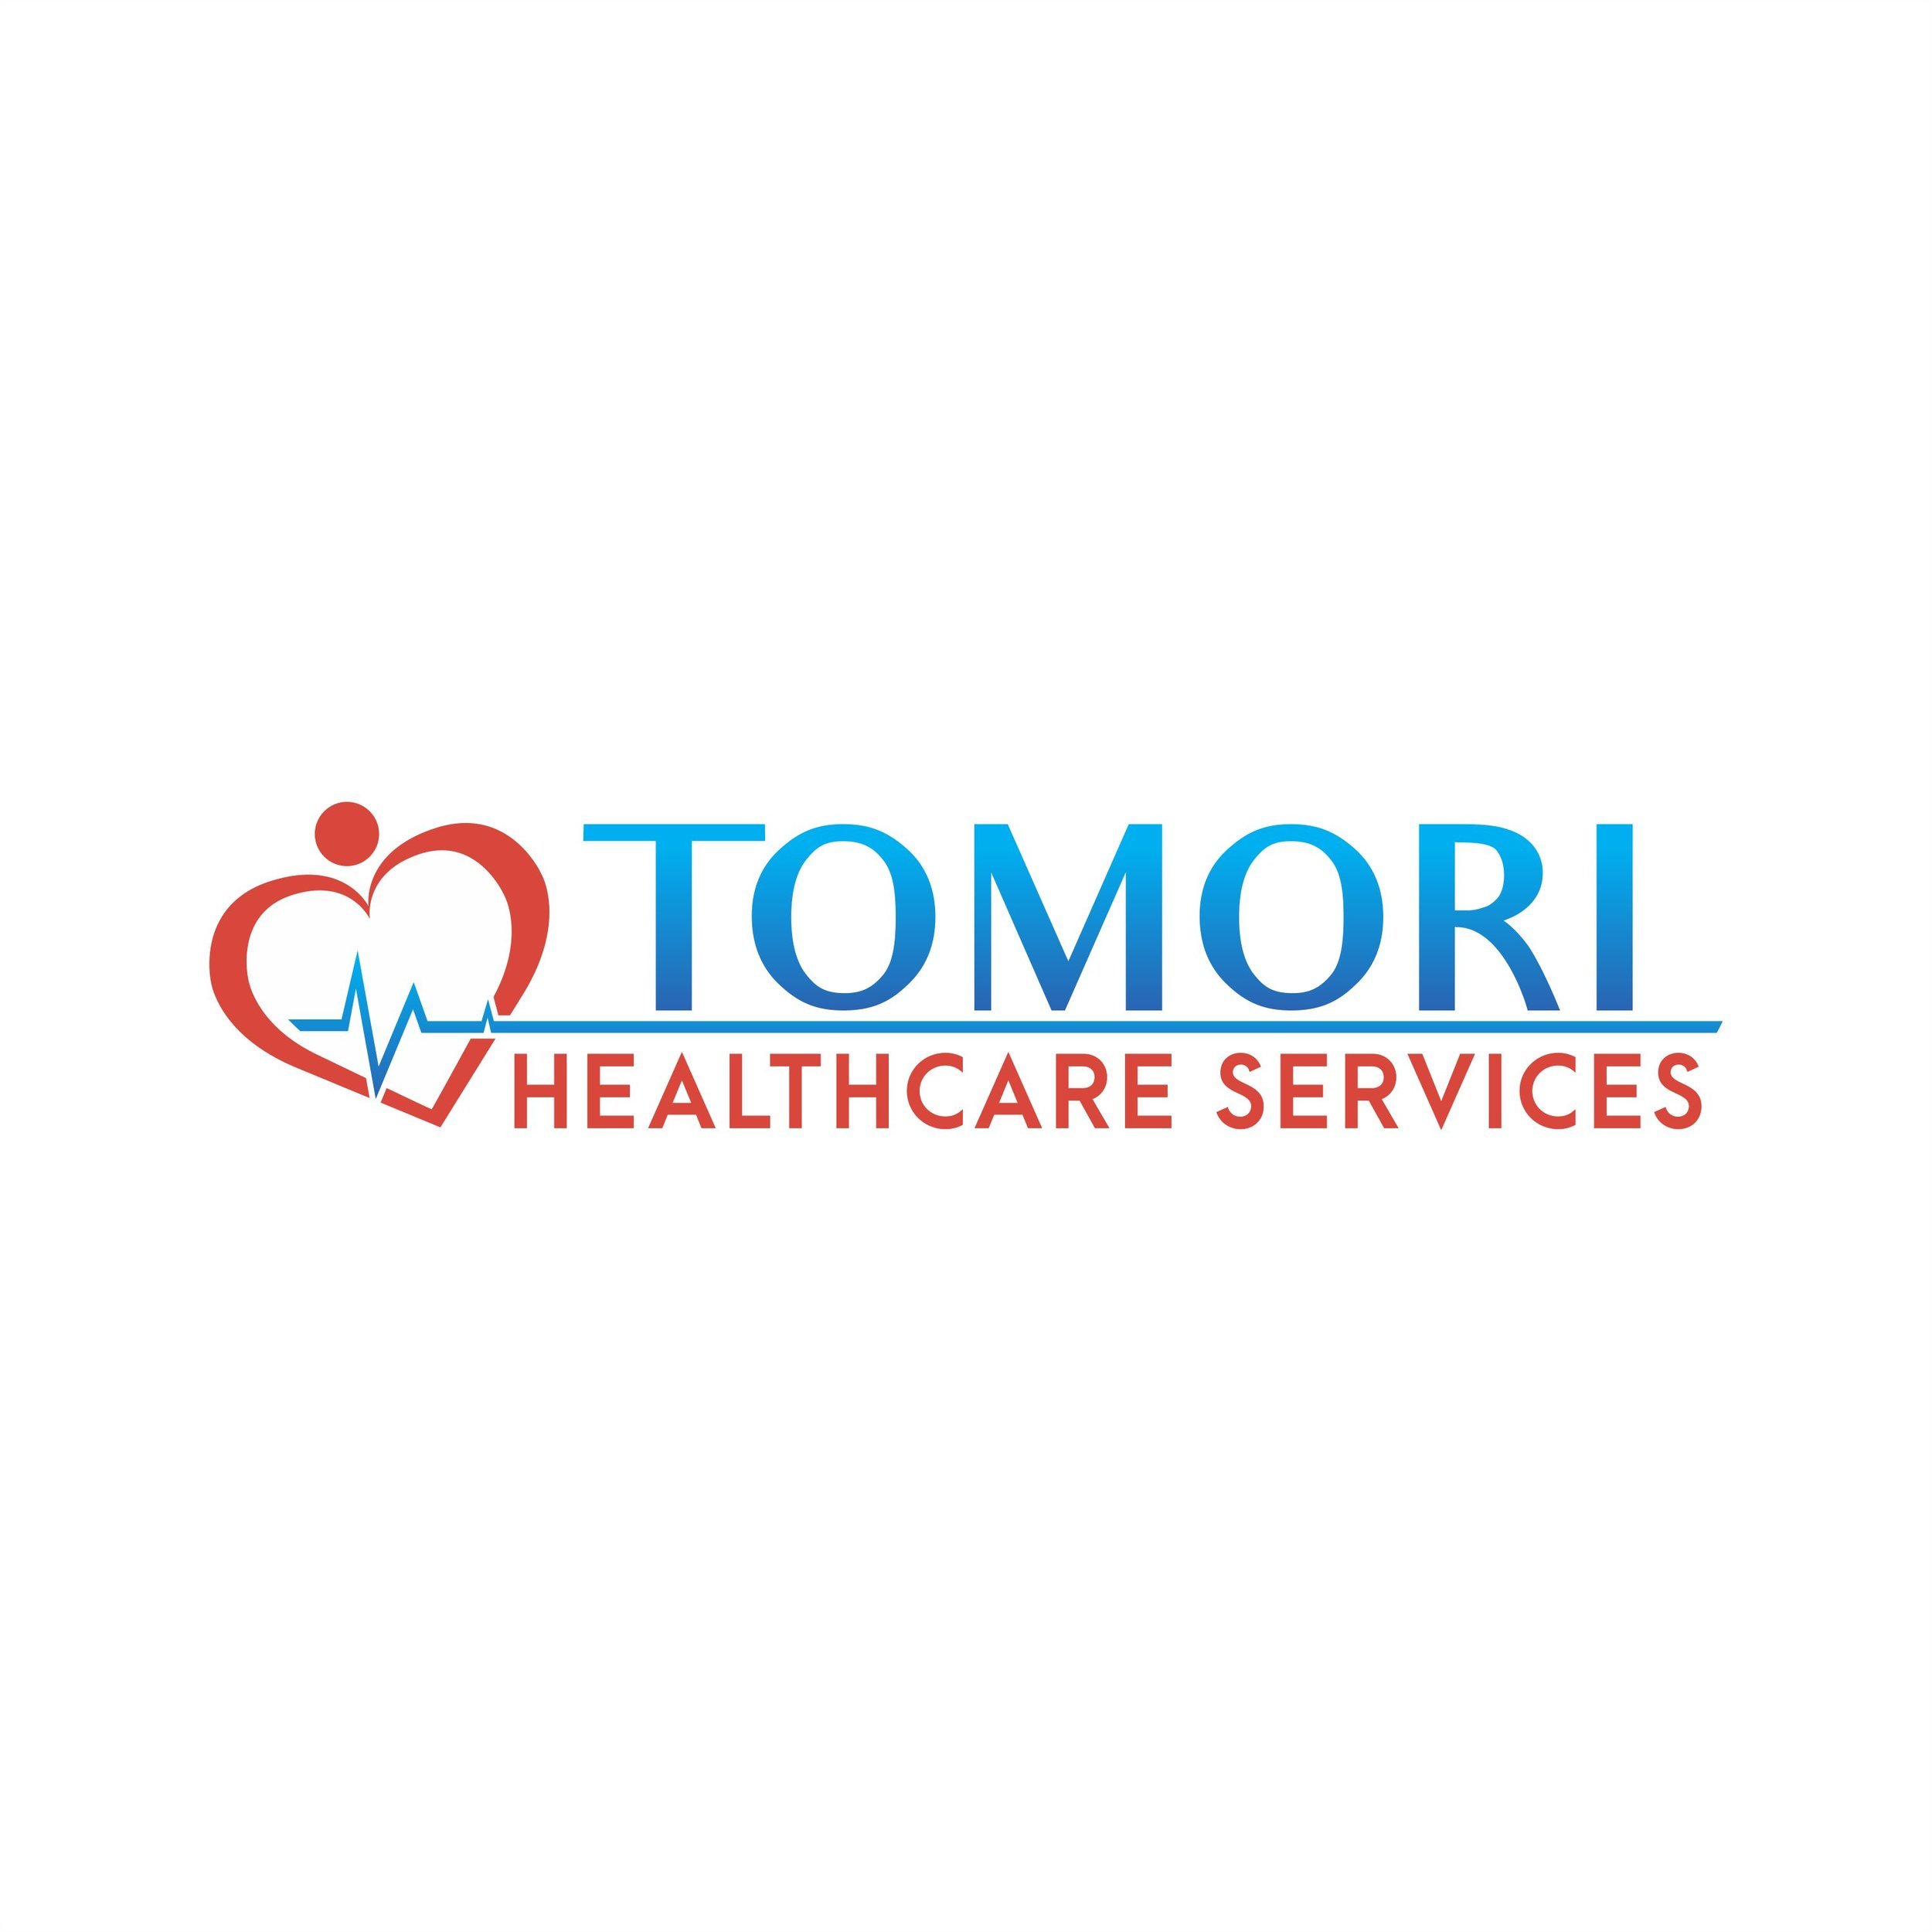 TOMORI HEALTHCARE SERVICES